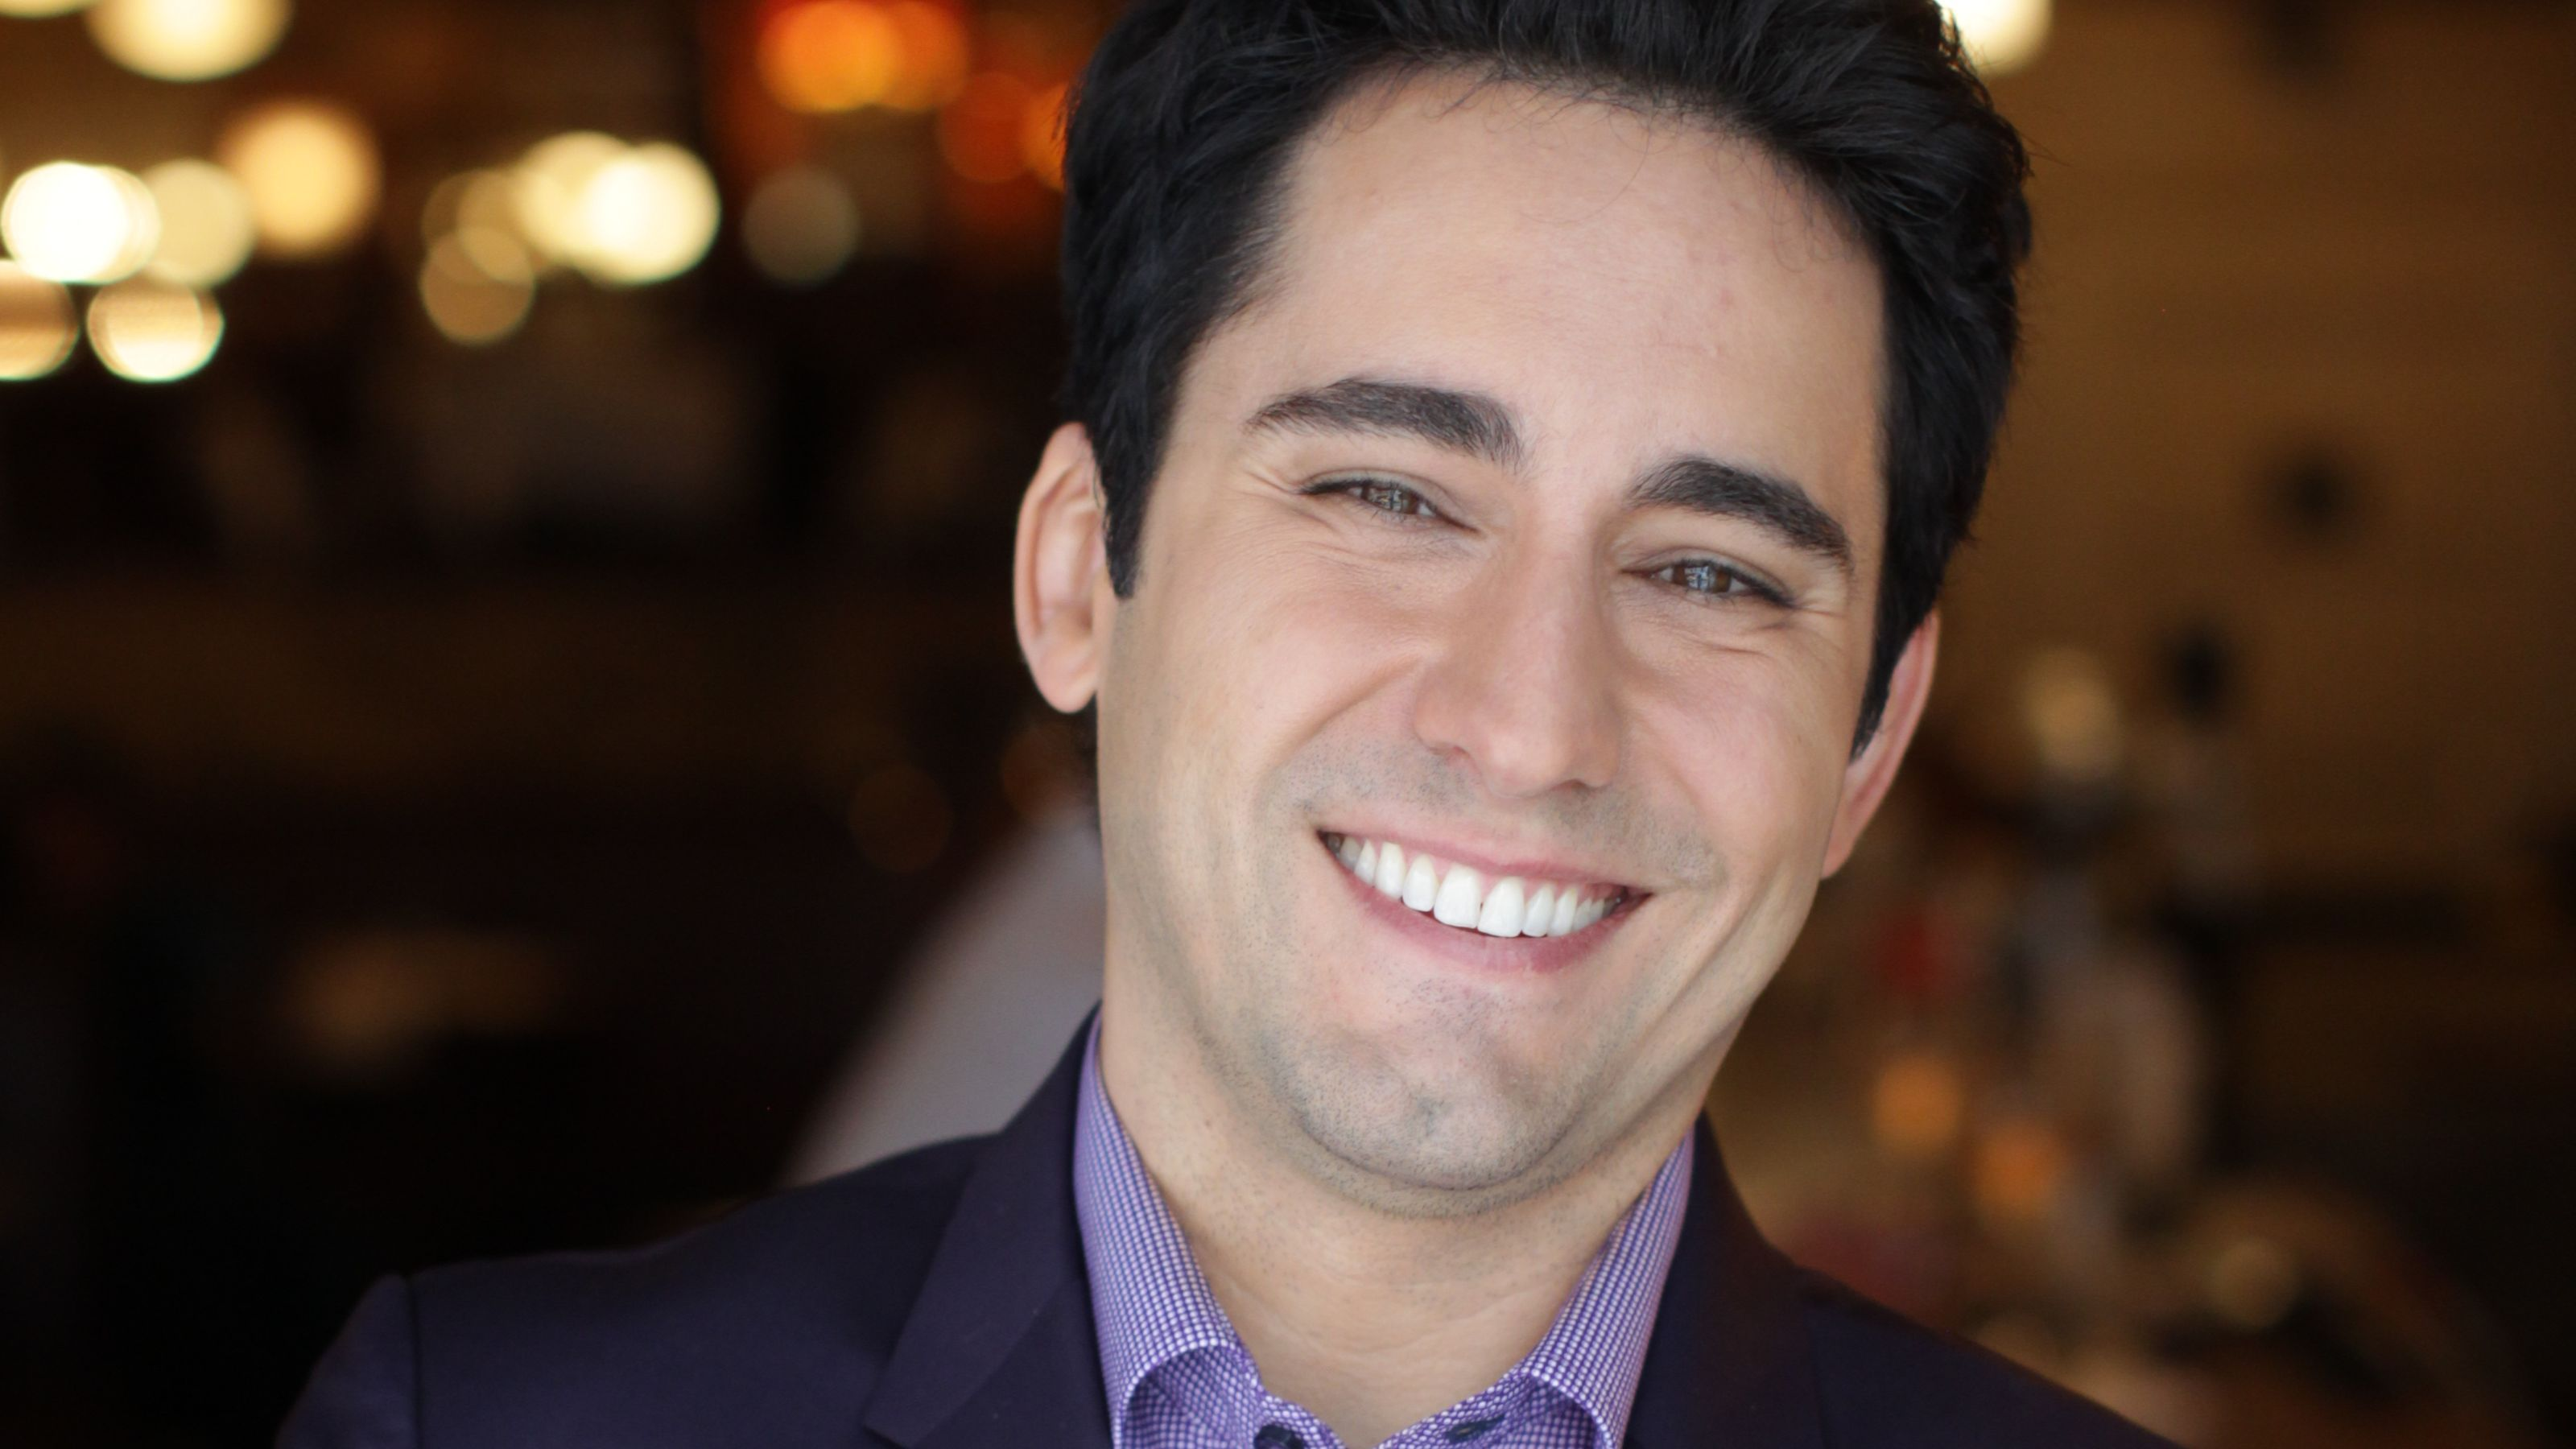 john lloyd young wikipedia